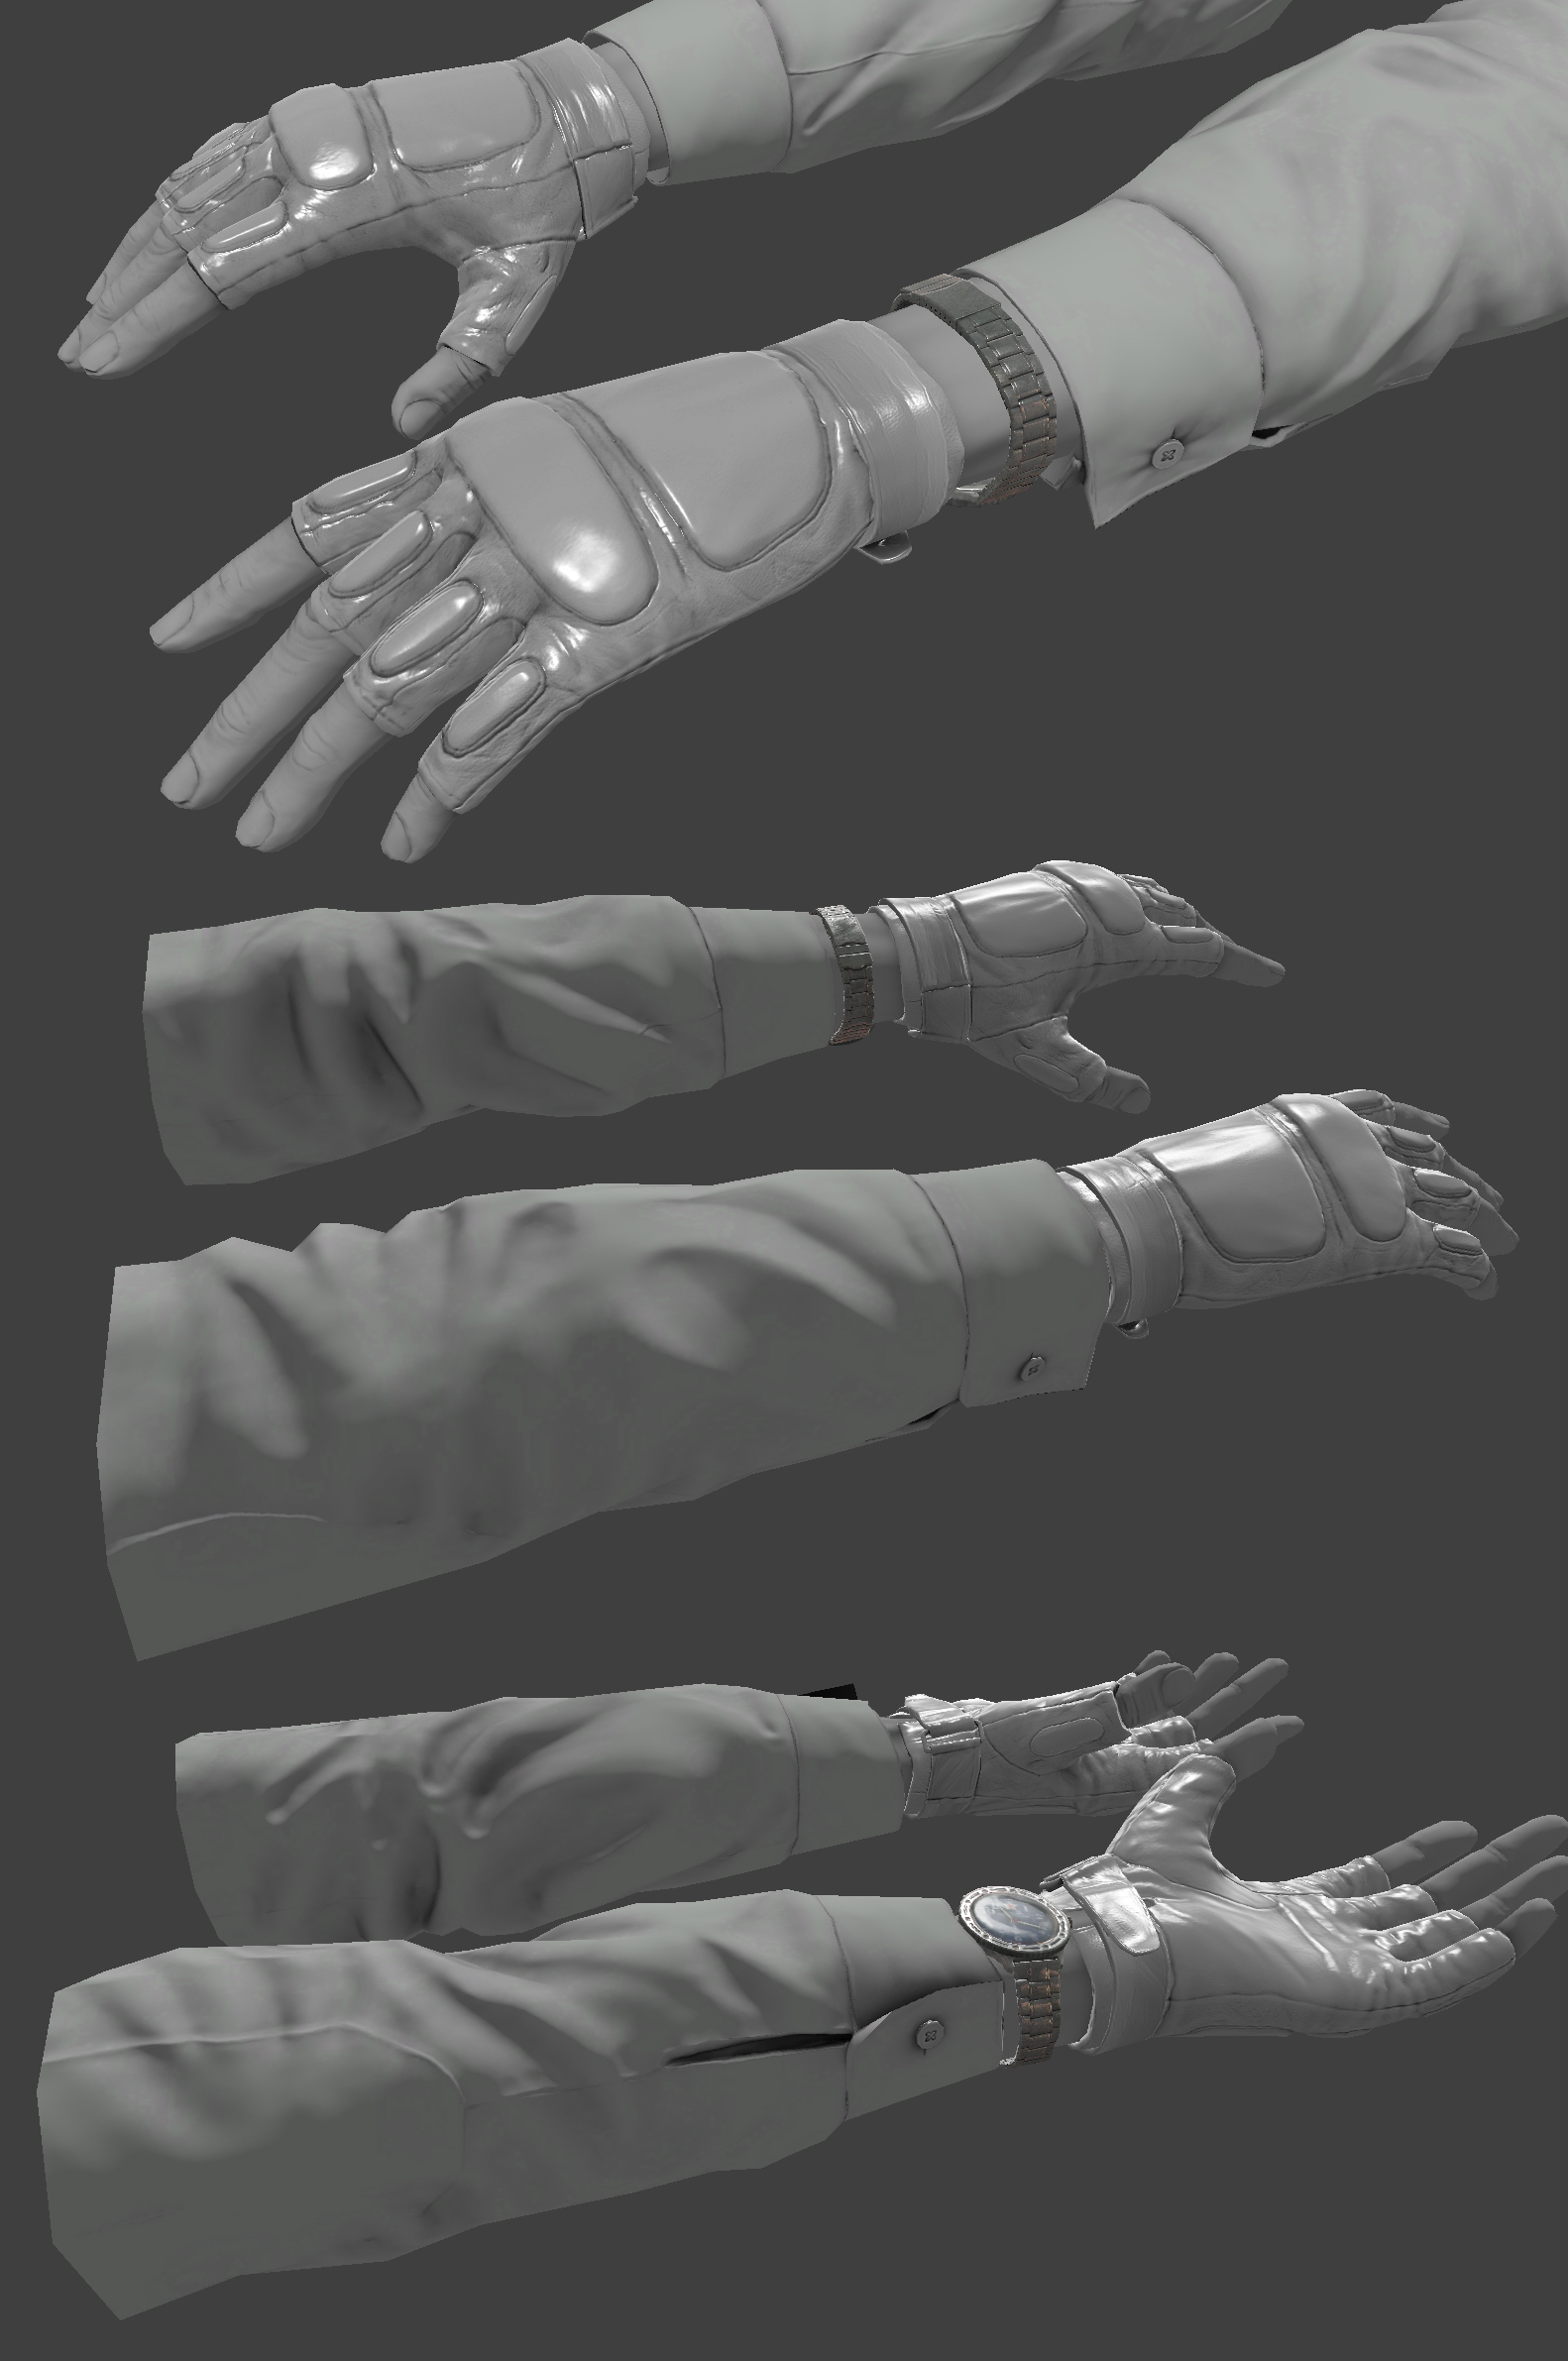 First Person Hands WIP Mdl Viewer image - FishMan:E - Mod DB